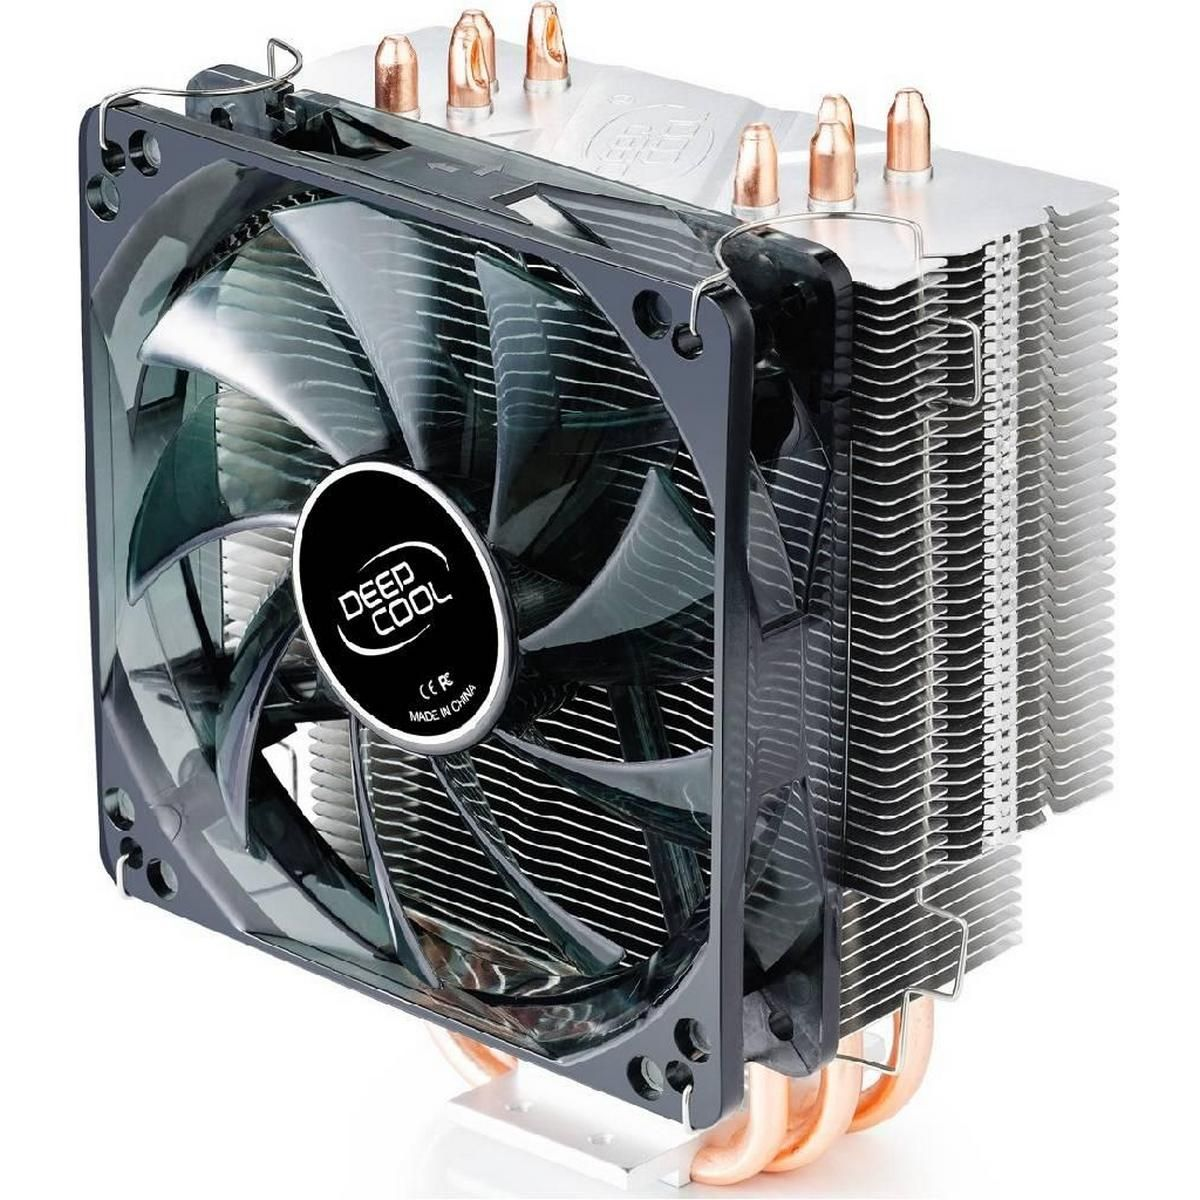 Strong Radiator Cooling Fan From Deep Cool Cooling fan